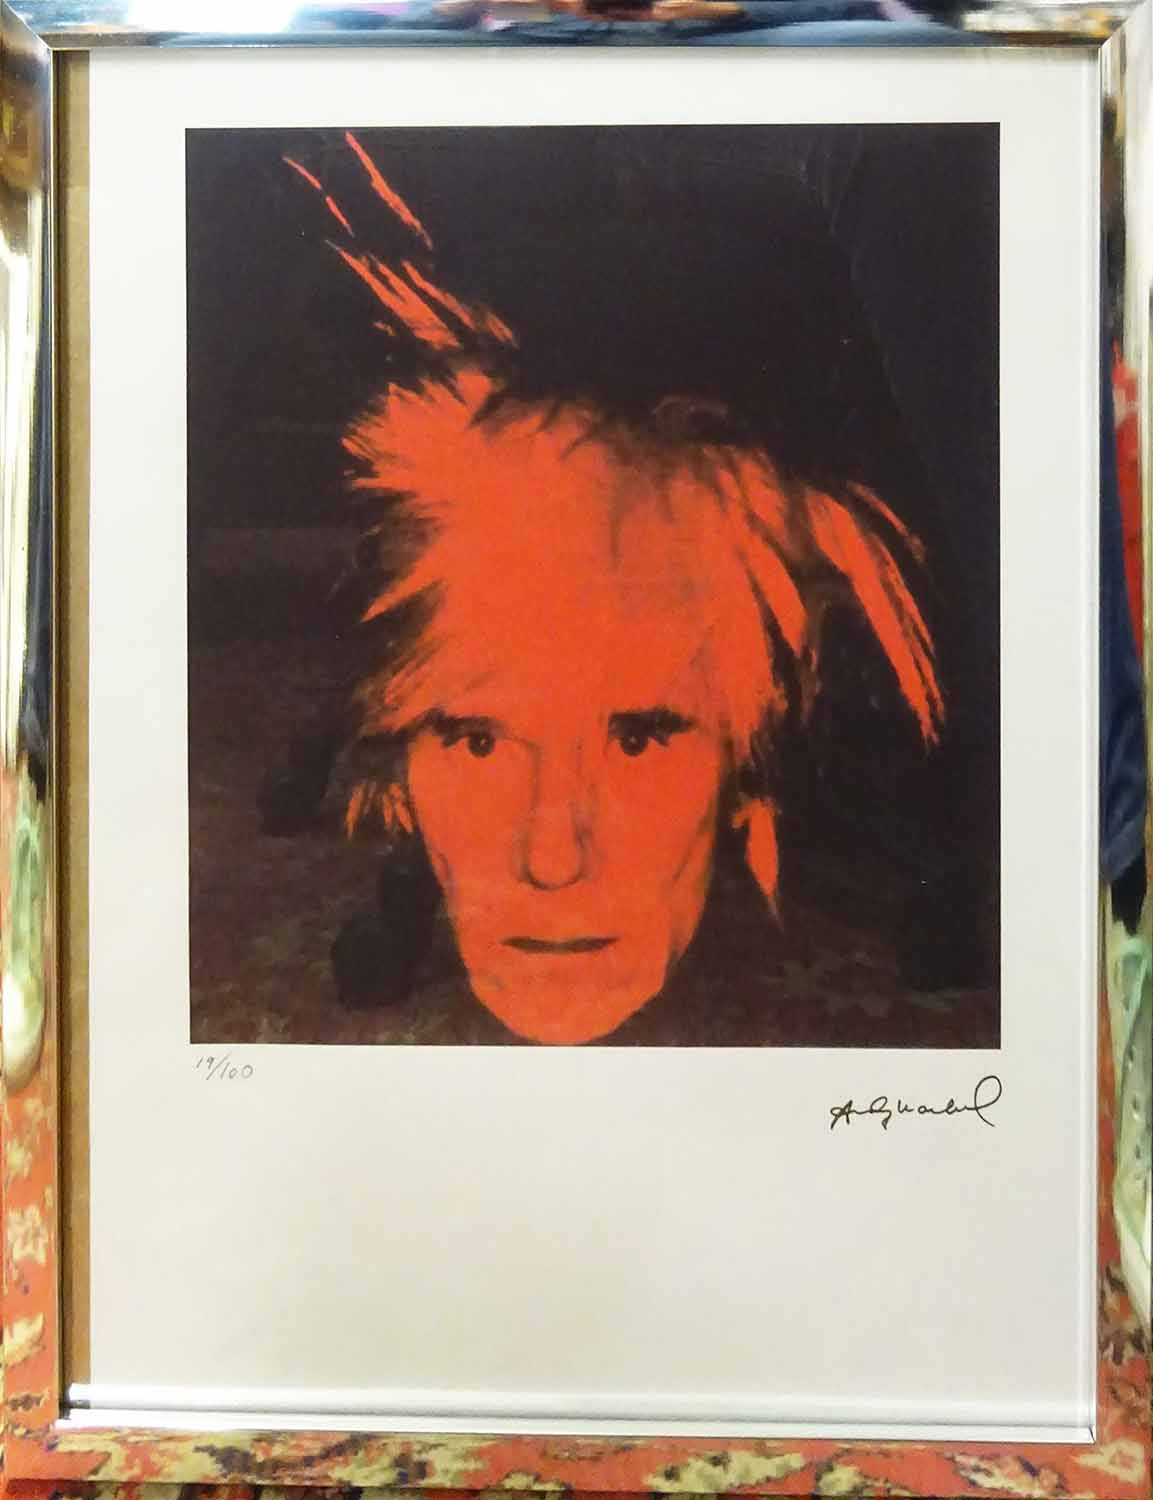 a4f05bf63ed22 ANDY WARHOL 'Self portrait', lithograph, on arches lucite marked ...